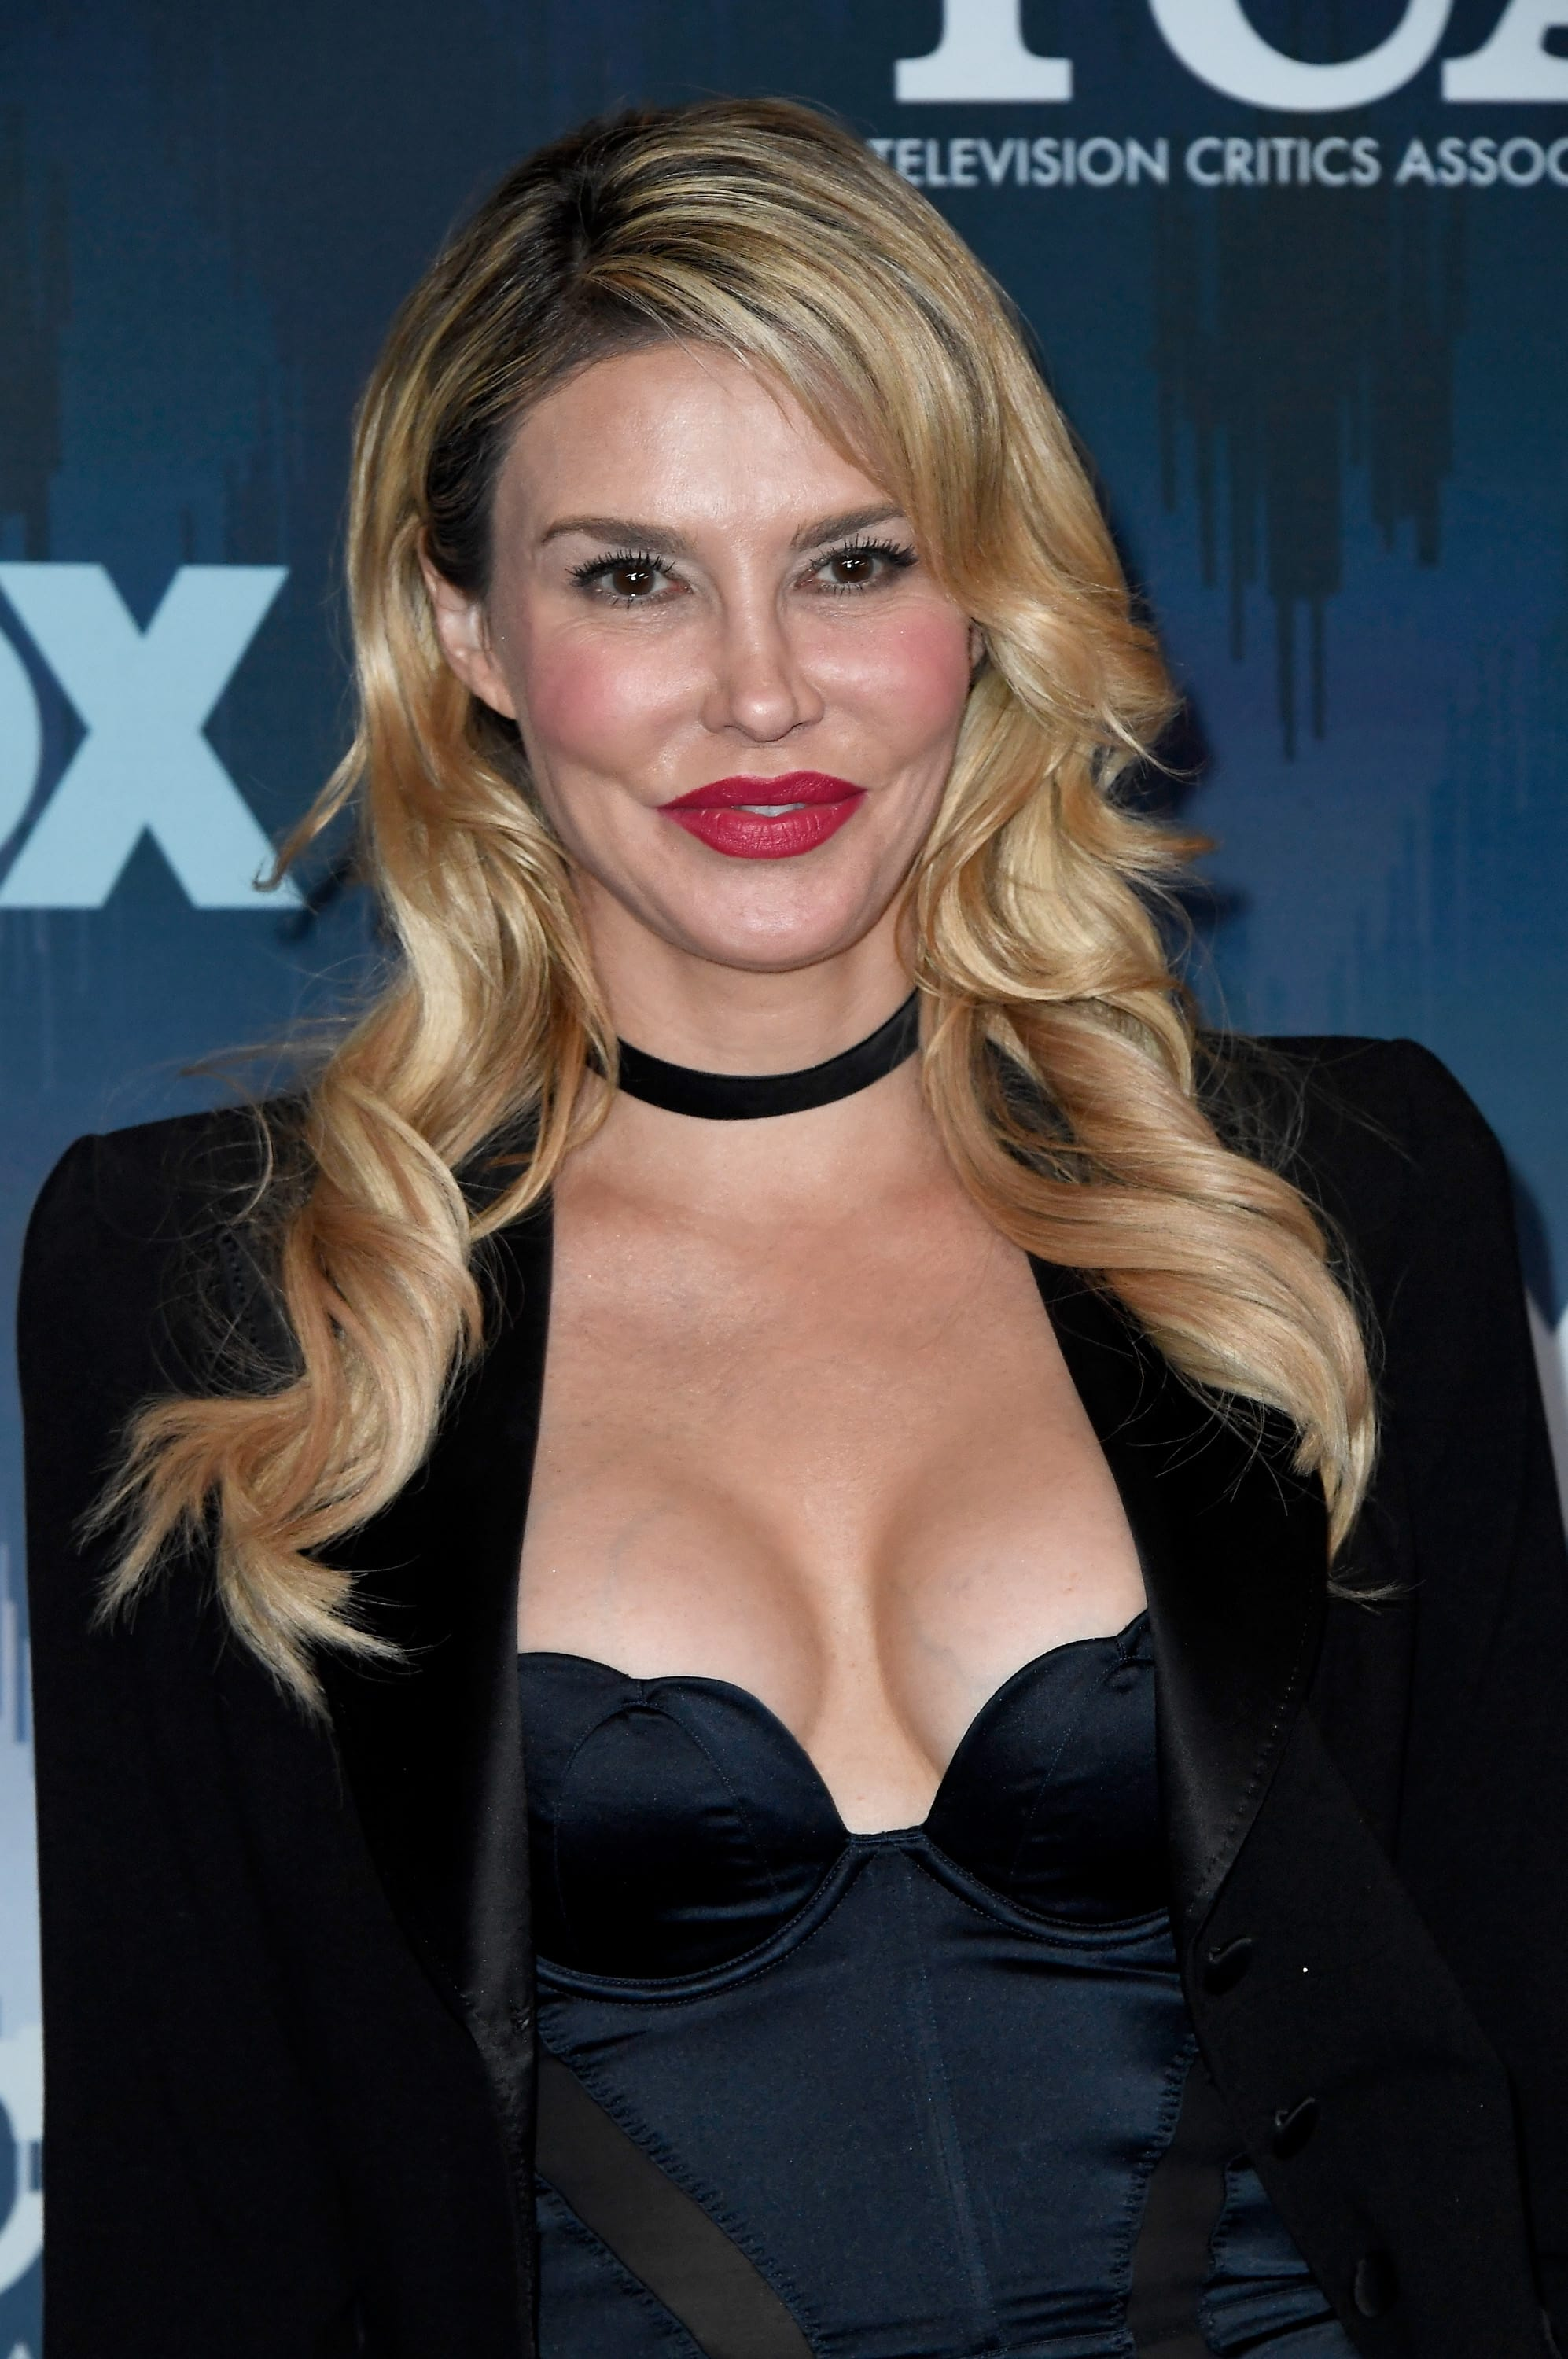 Cleavage Brandi Glanville nude (86 foto and video), Topless, Fappening, Instagram, swimsuit 2006